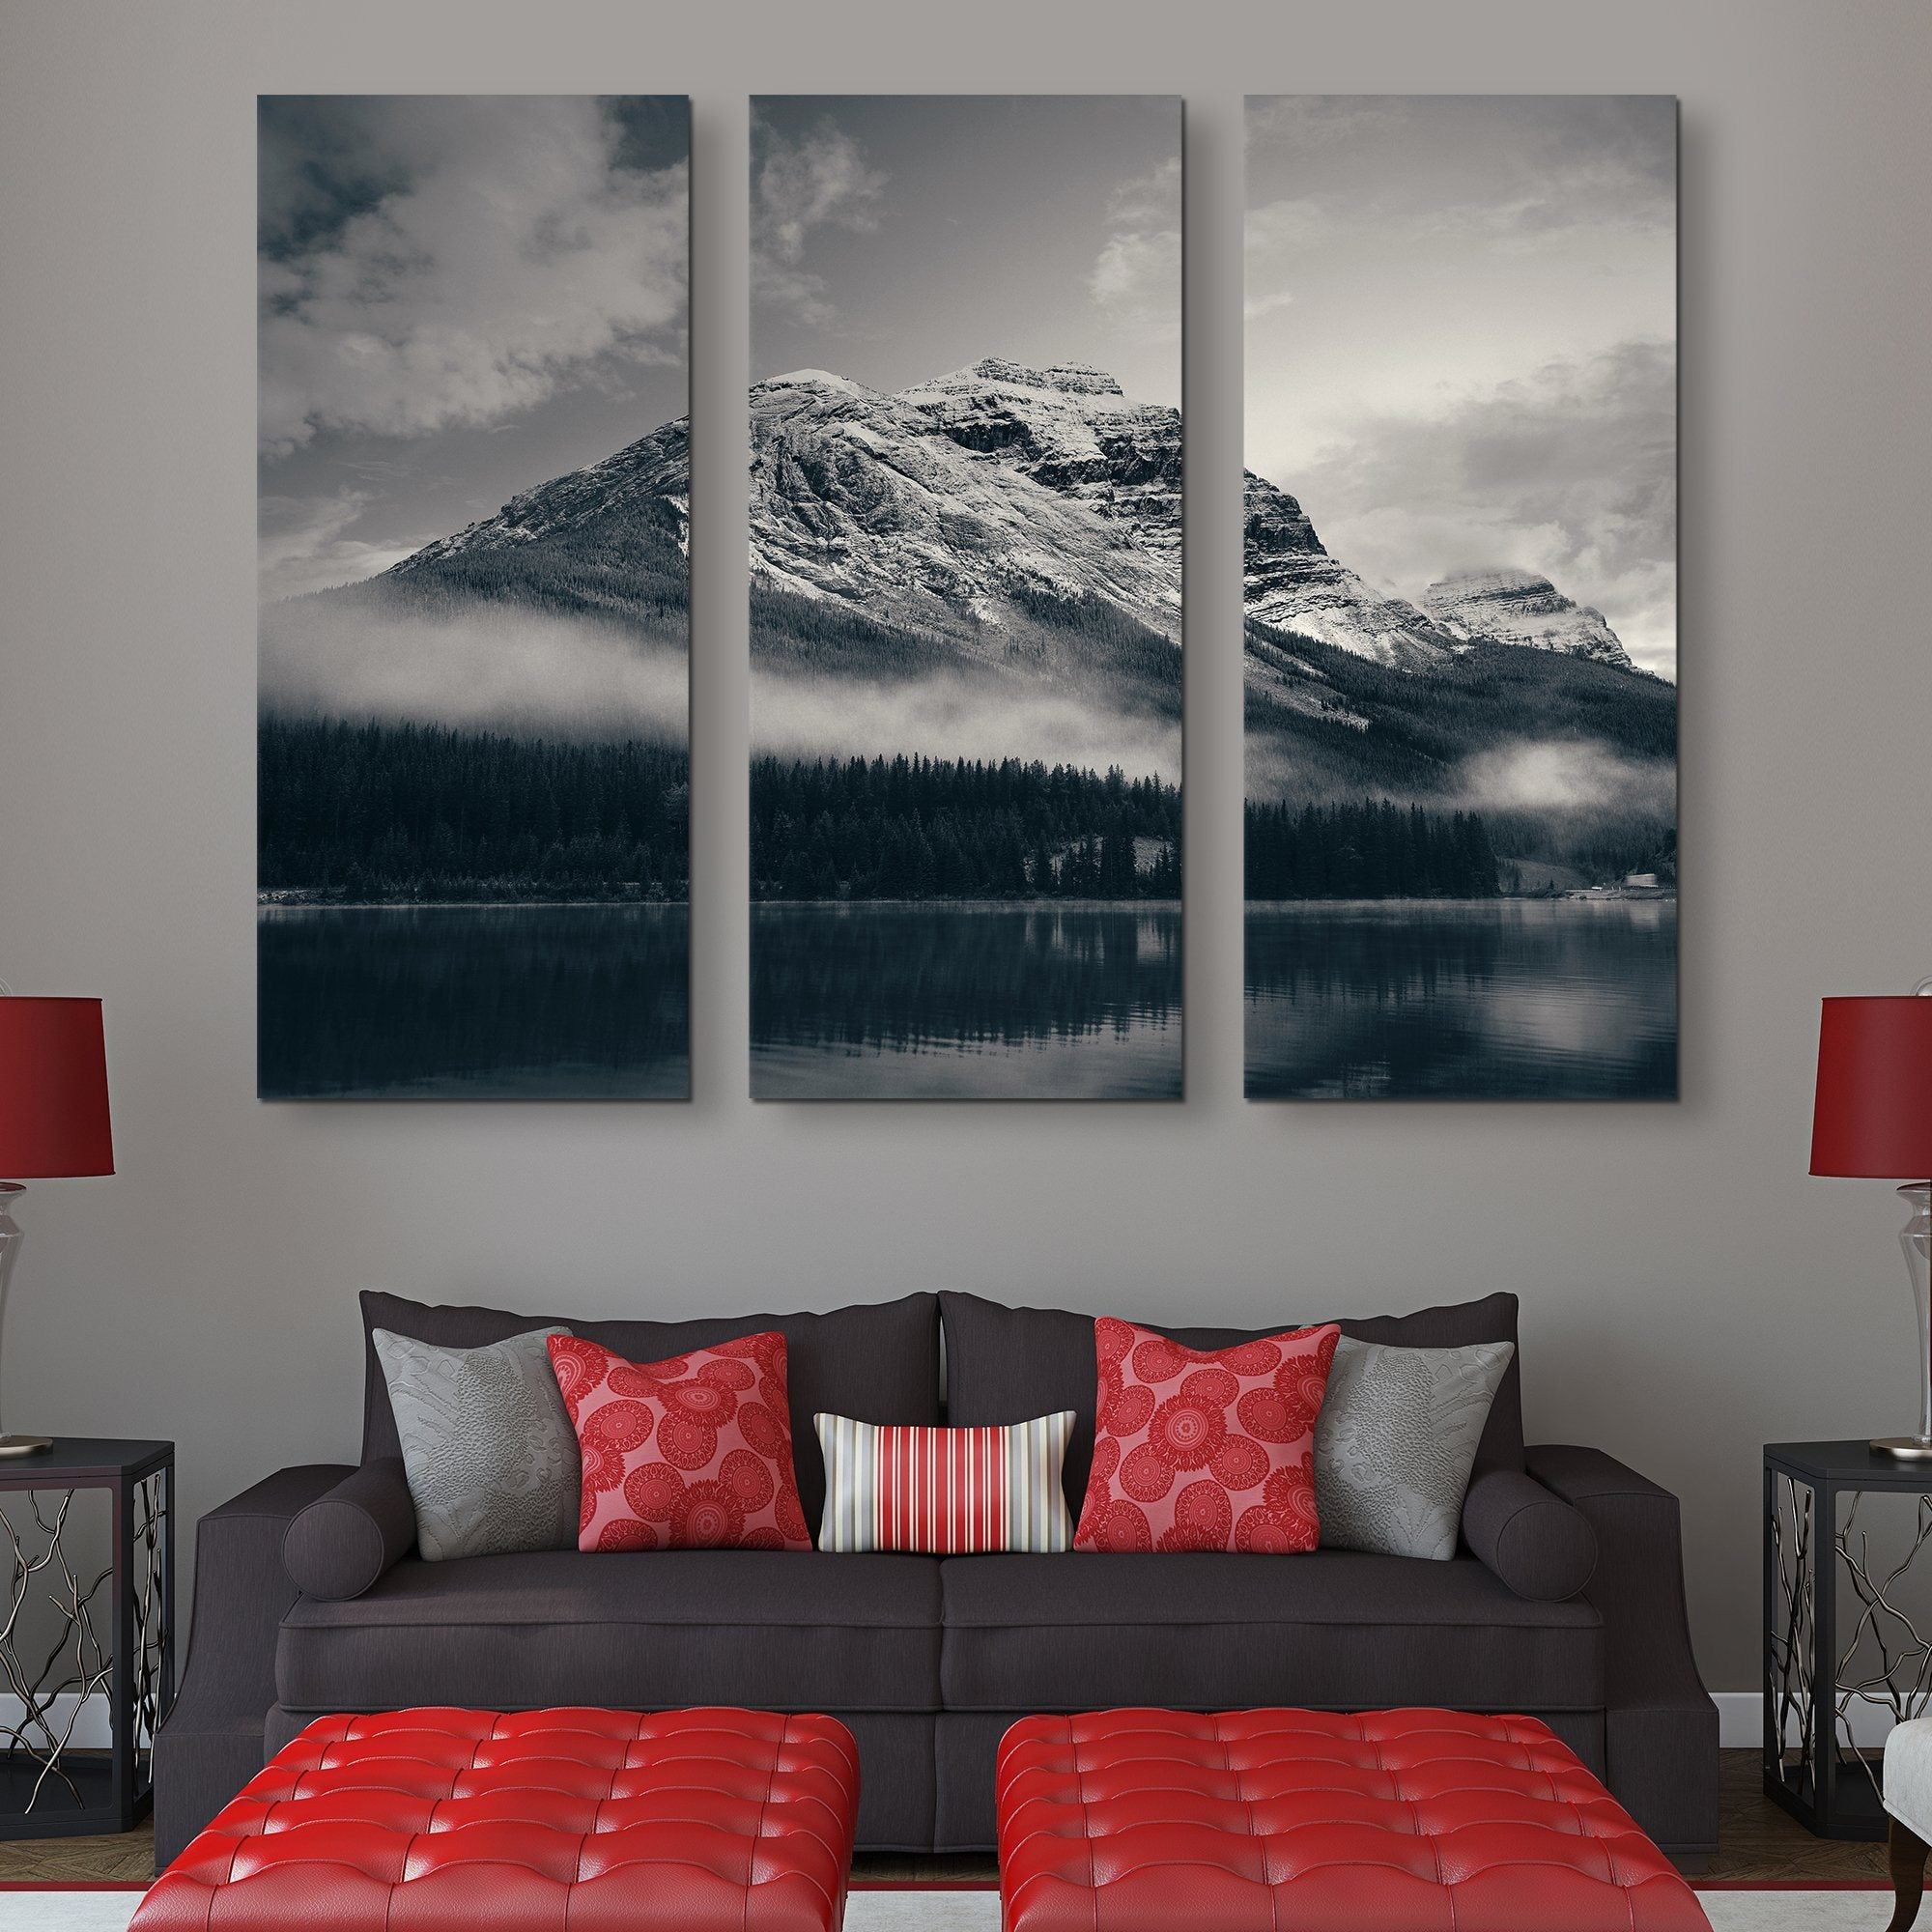 Snow Capped Mountain - Banff National Park wall art 3 piece